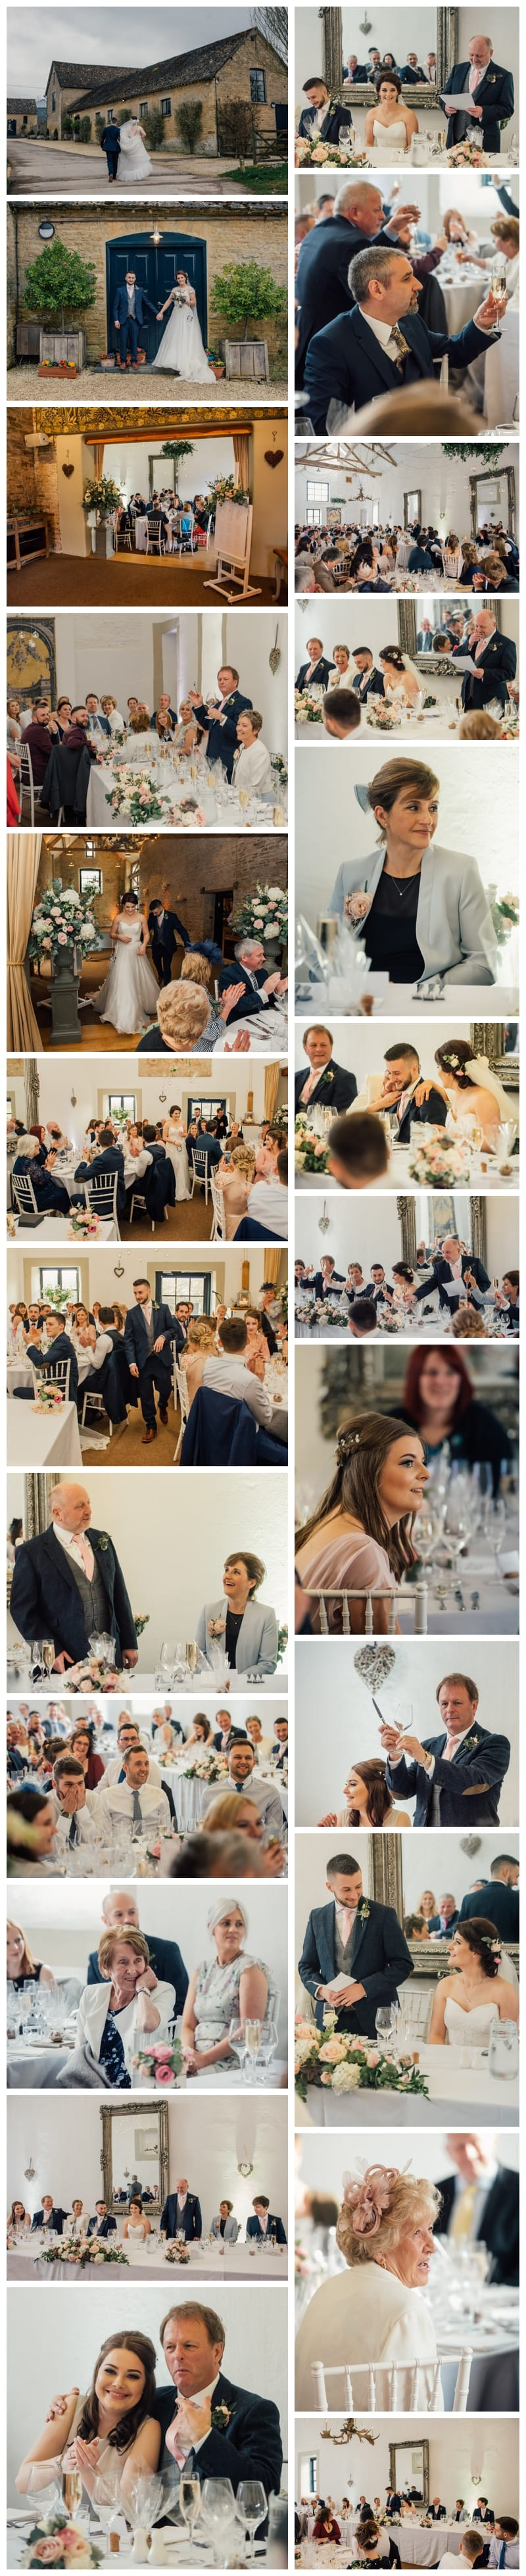 Speeches and Wedding Breakfast in the White Barn